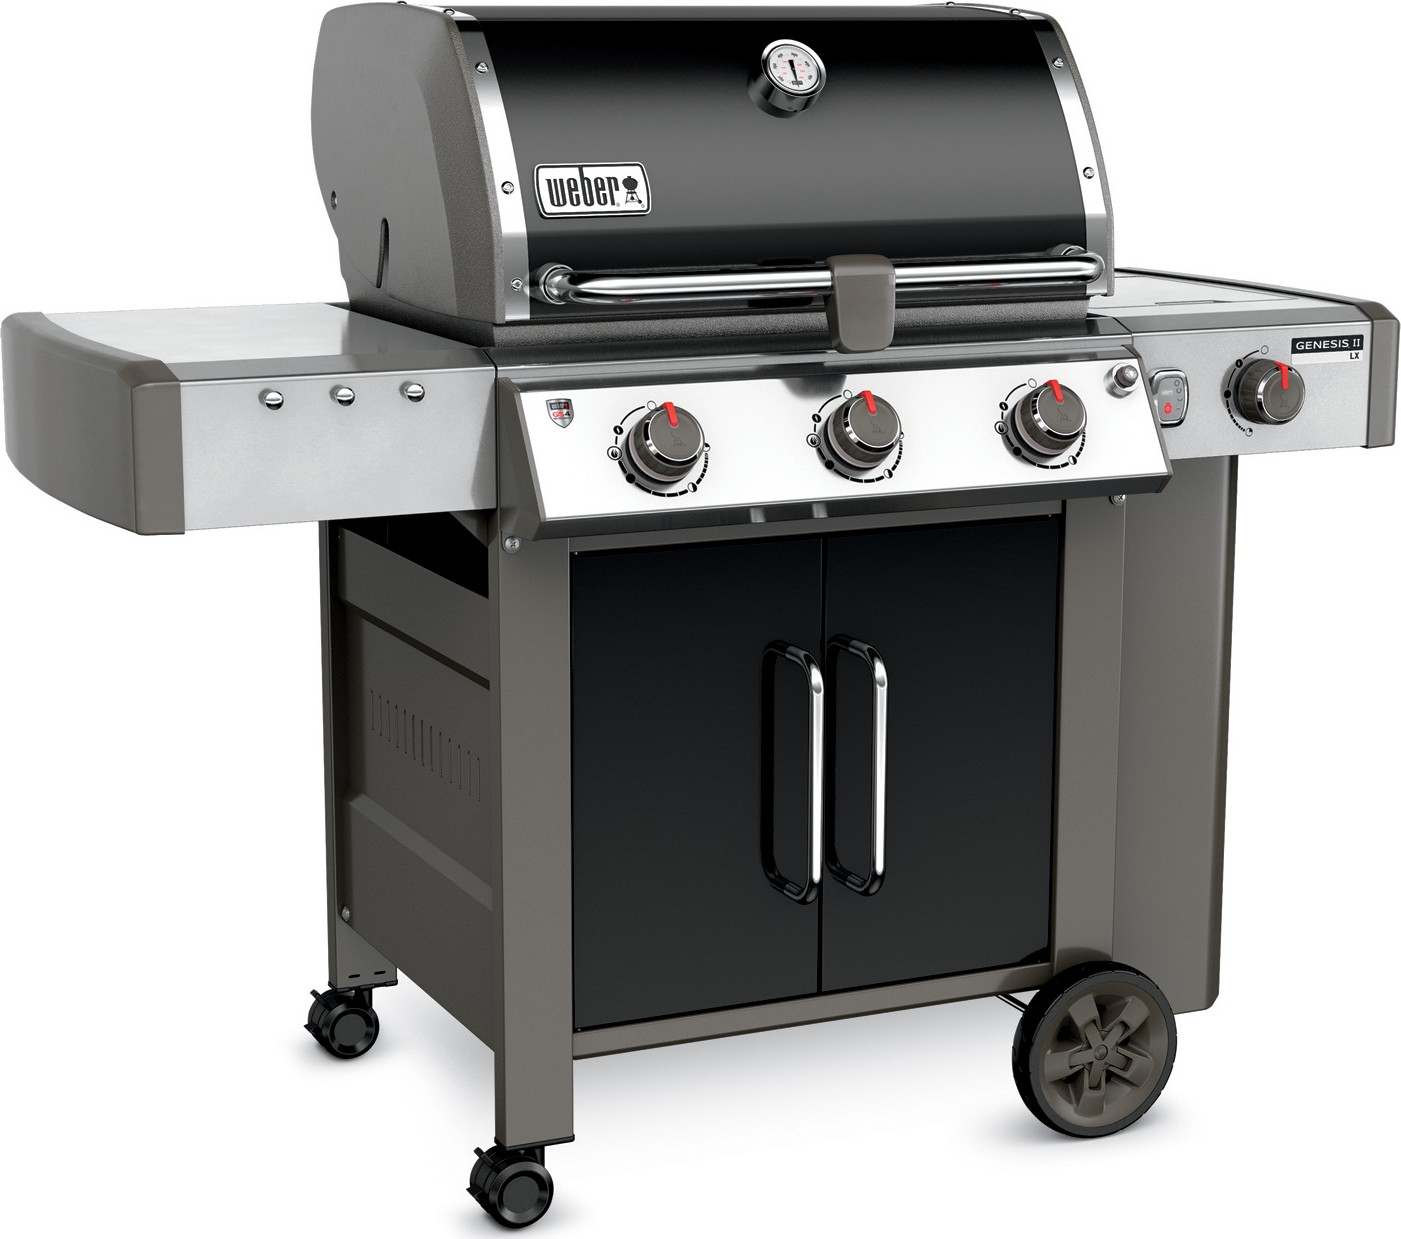 weber genesis ii lx e 340 3 burner gas grill 61014001 black lp. Black Bedroom Furniture Sets. Home Design Ideas